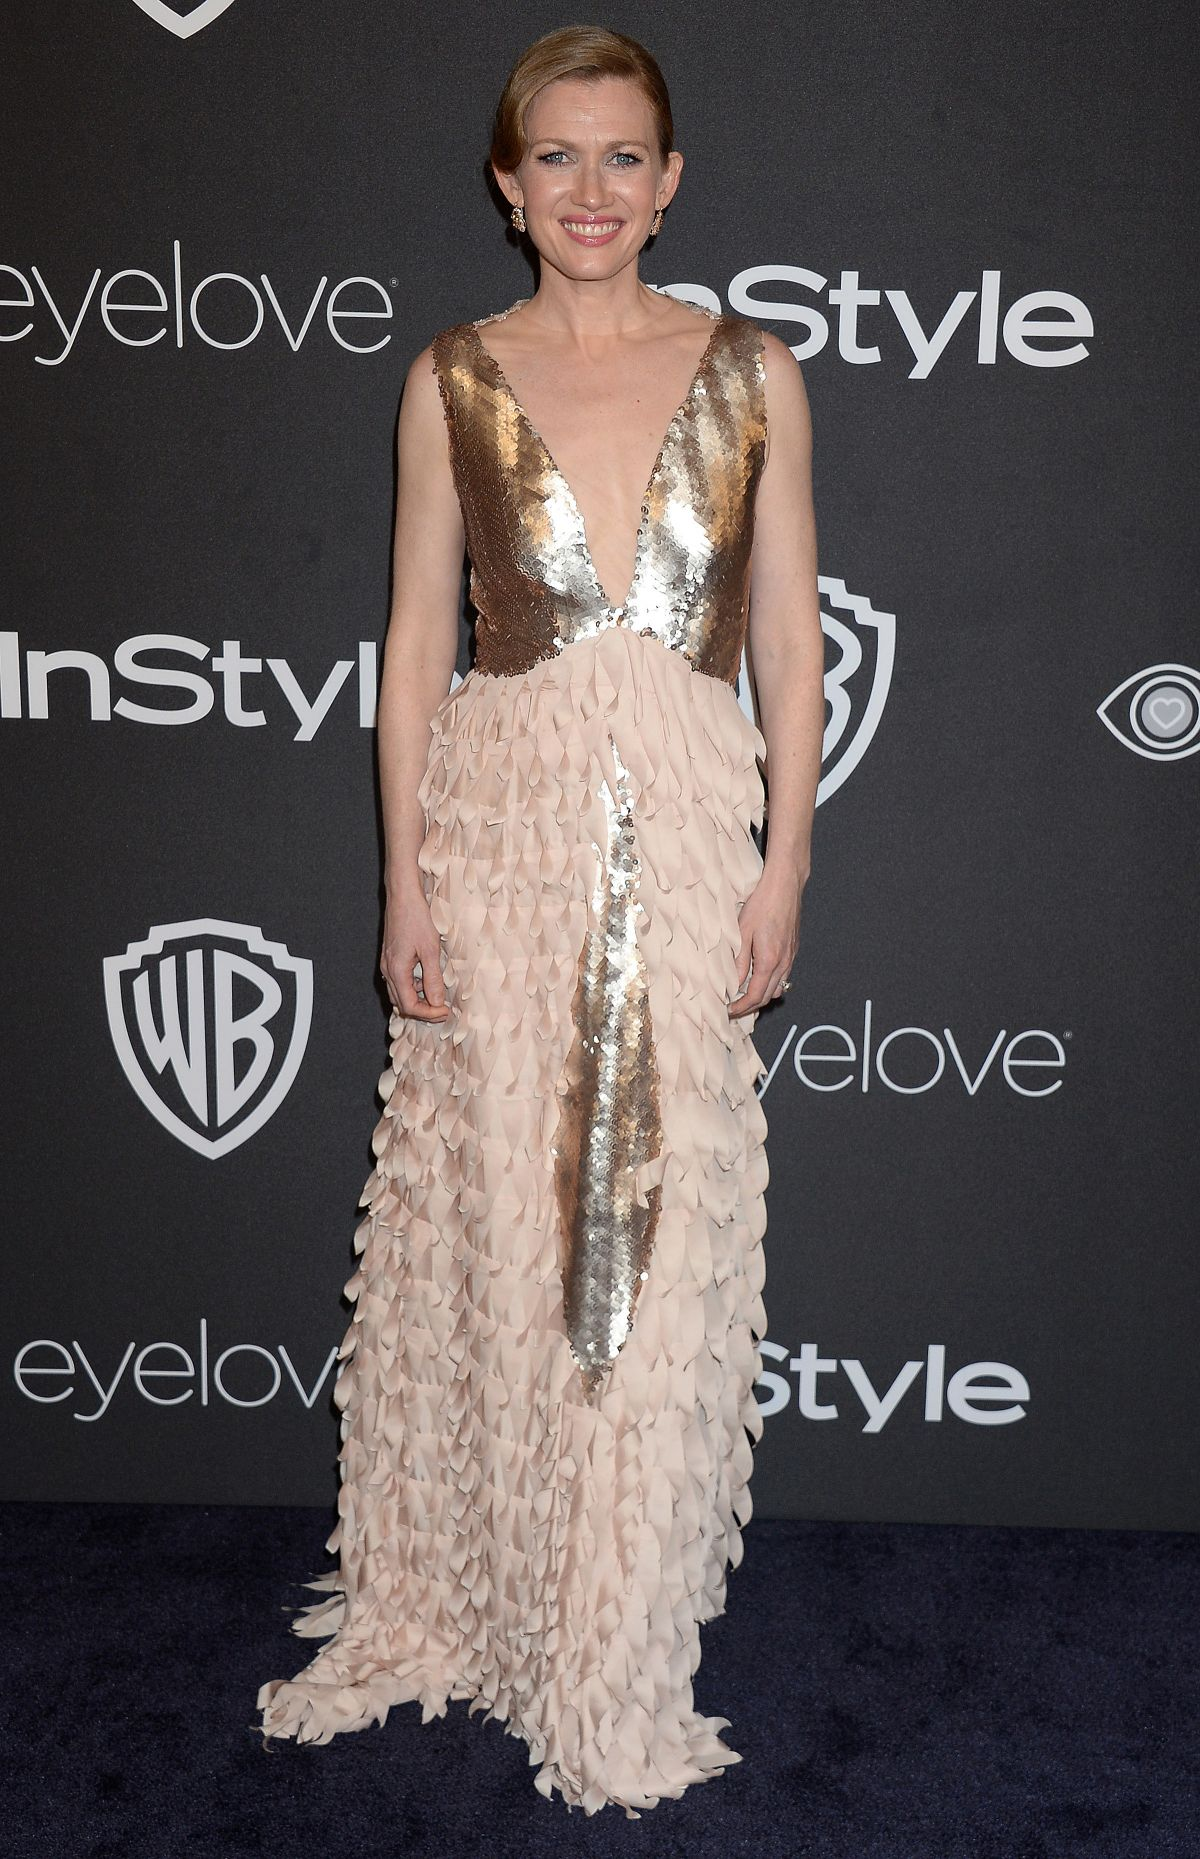 MIREILLE ENOS at Warner Bros. Pictures & Instyle's 18th Annual Golden Globes Party in Beverly Hills 01/08/2017